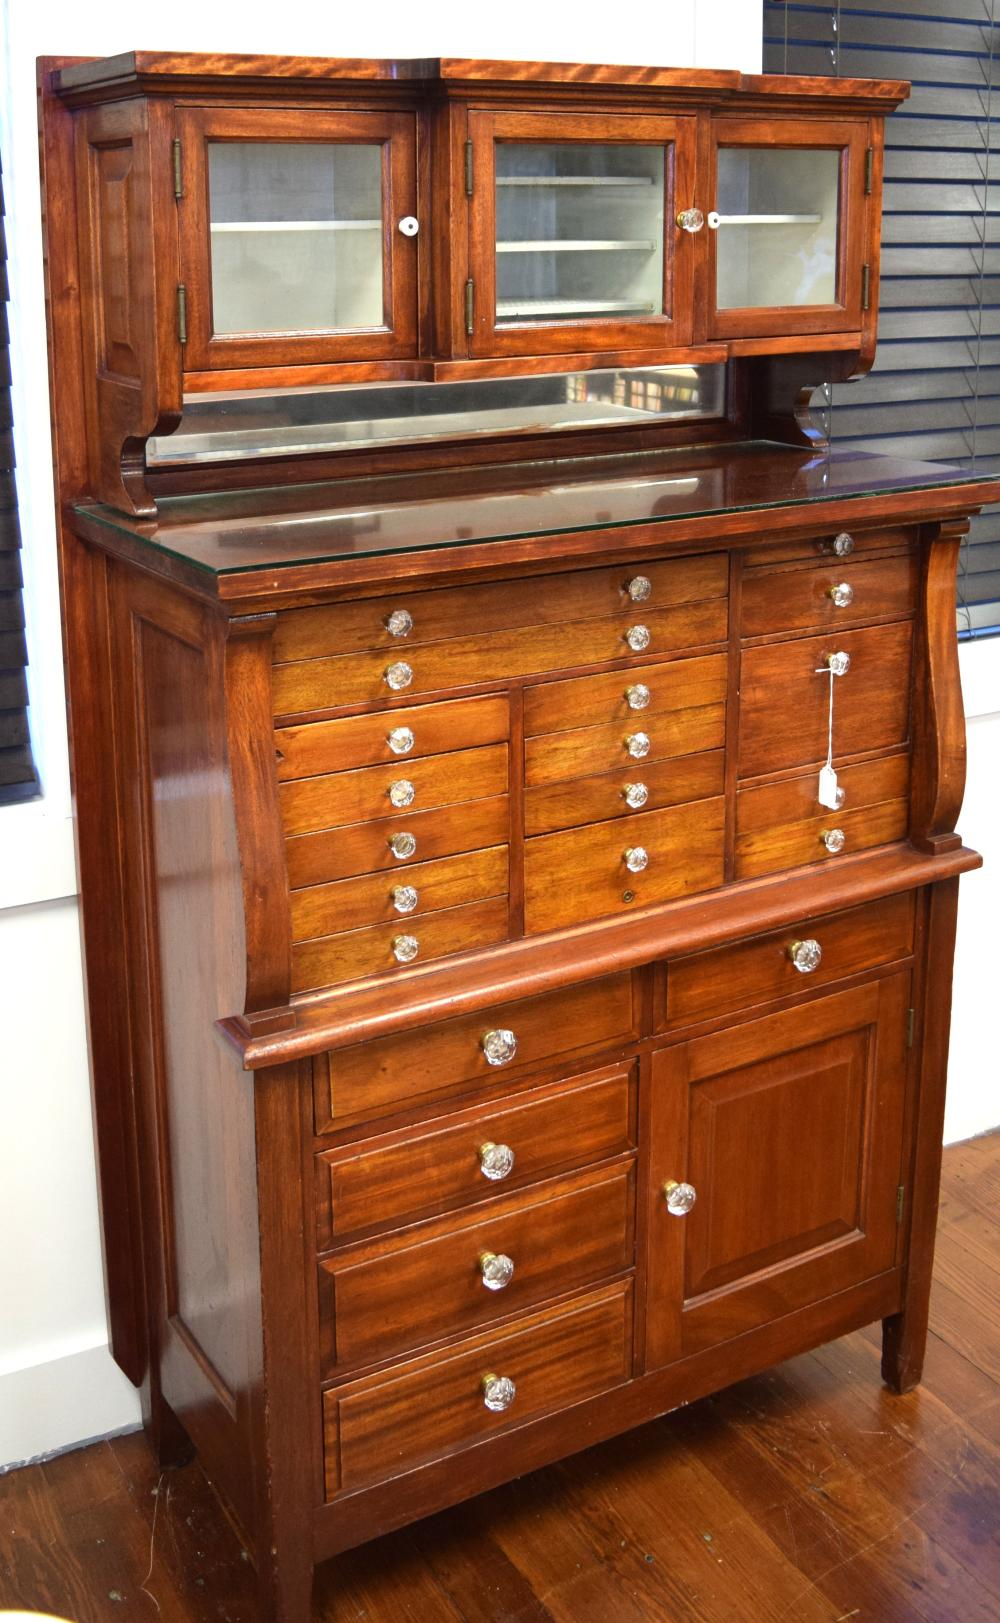 ANTIQUE DENTAL CABINET: